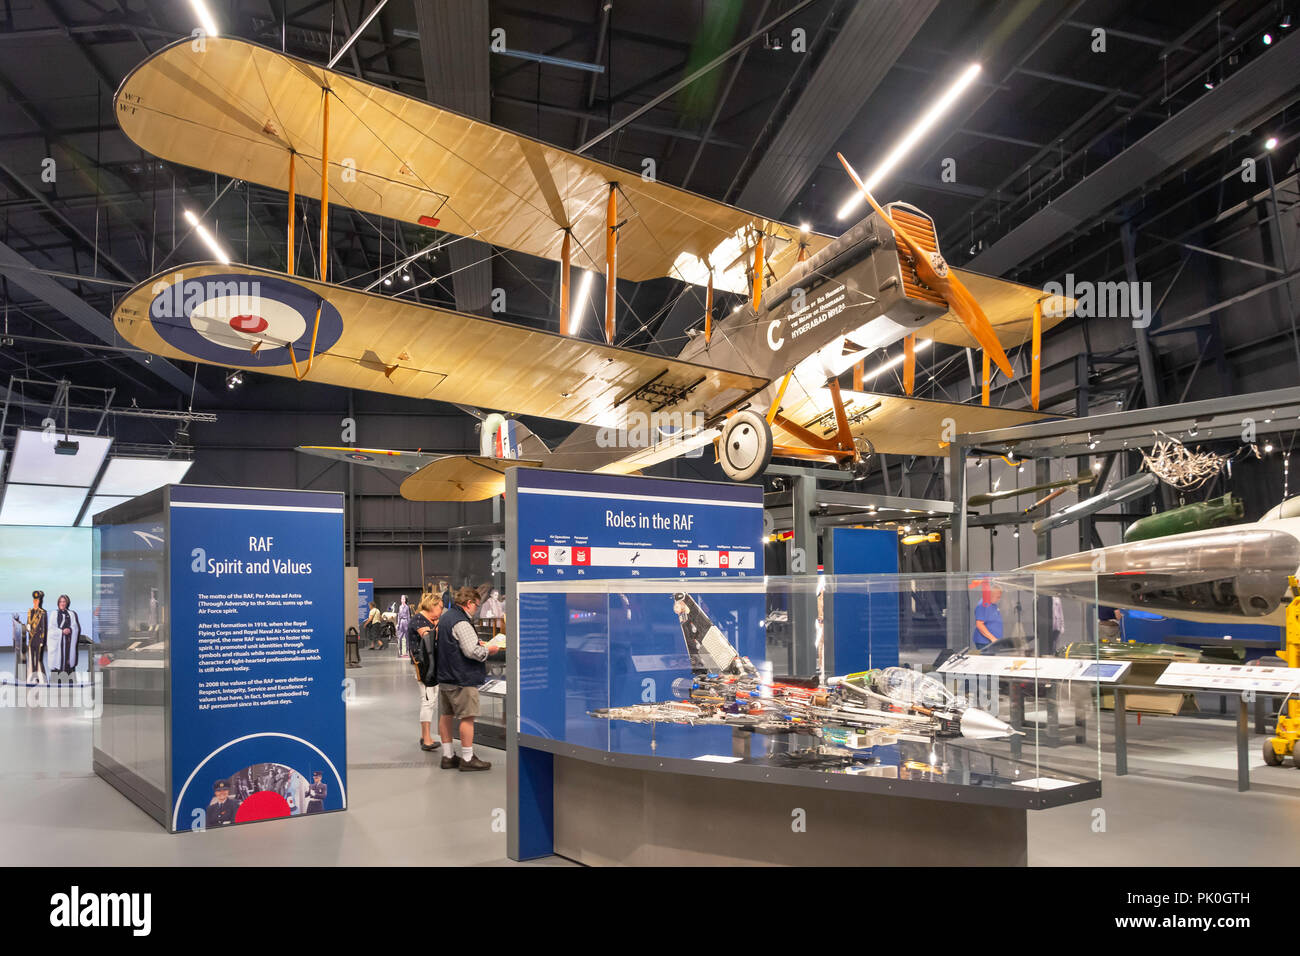 Dehavilland DH9A strategic bomber on display at Royal Air Force Museum, Colindale, London Borough of Barnet, Greater London, England, United Kingdom - Stock Image